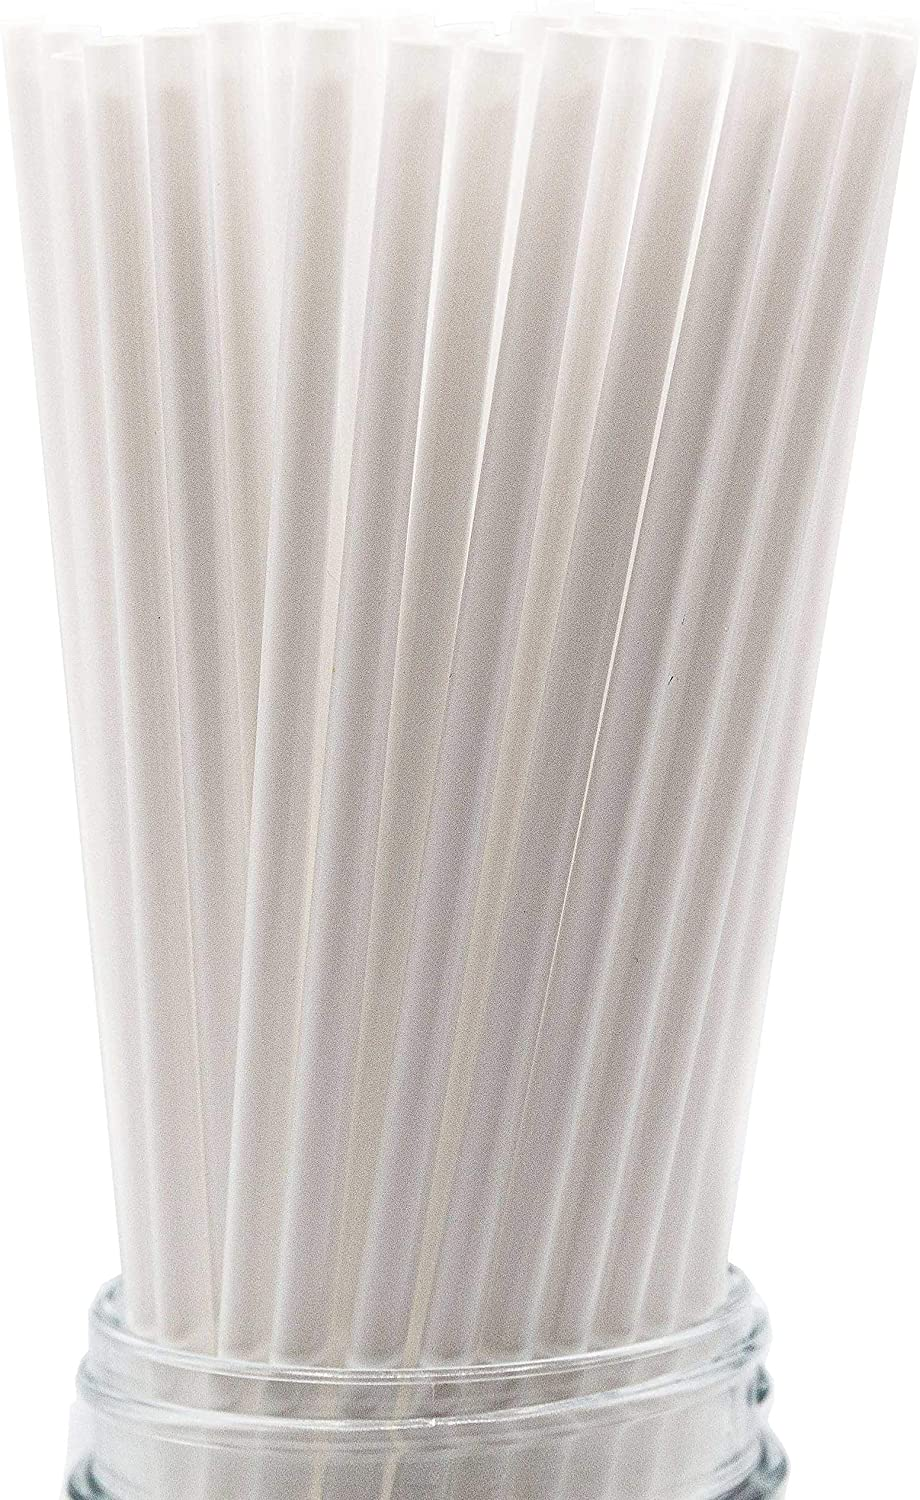 Made in USA Pack of 250 White Slim Tall (10